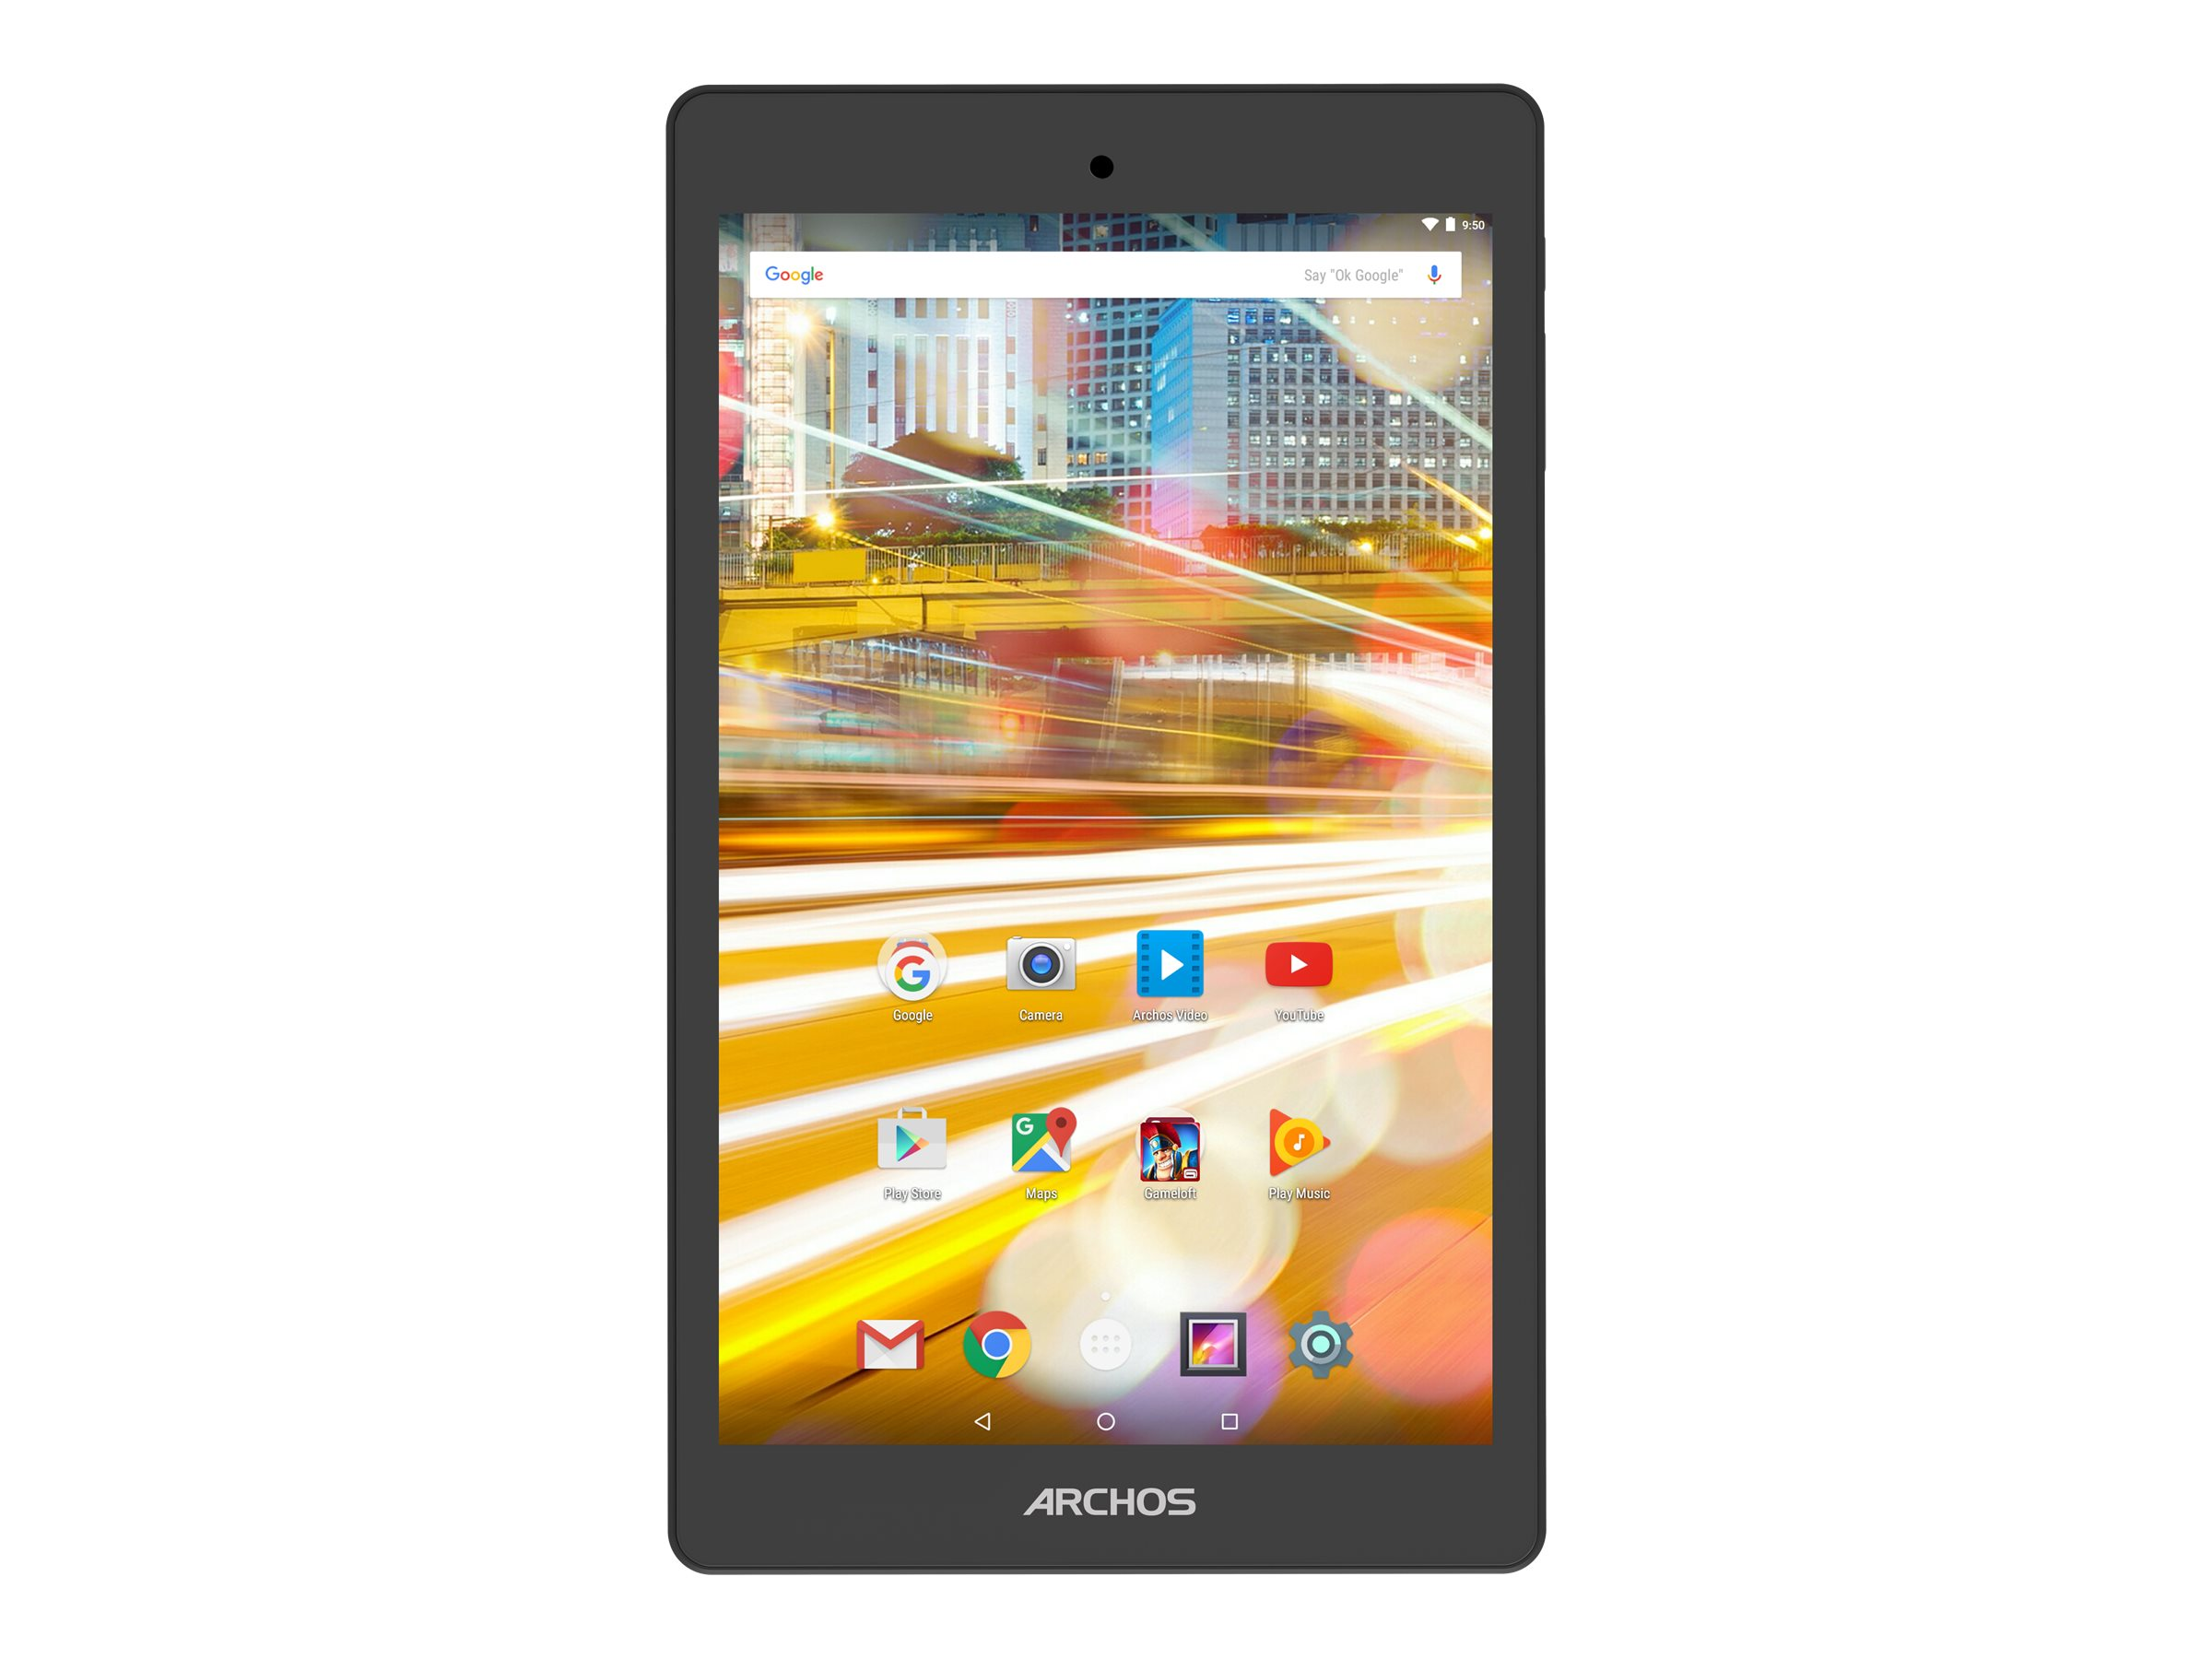 Archos 80 Oxygen - Tablet - Android 6.0 (Marshmallow) - 32 GB eMMC - 20.3 cm (8